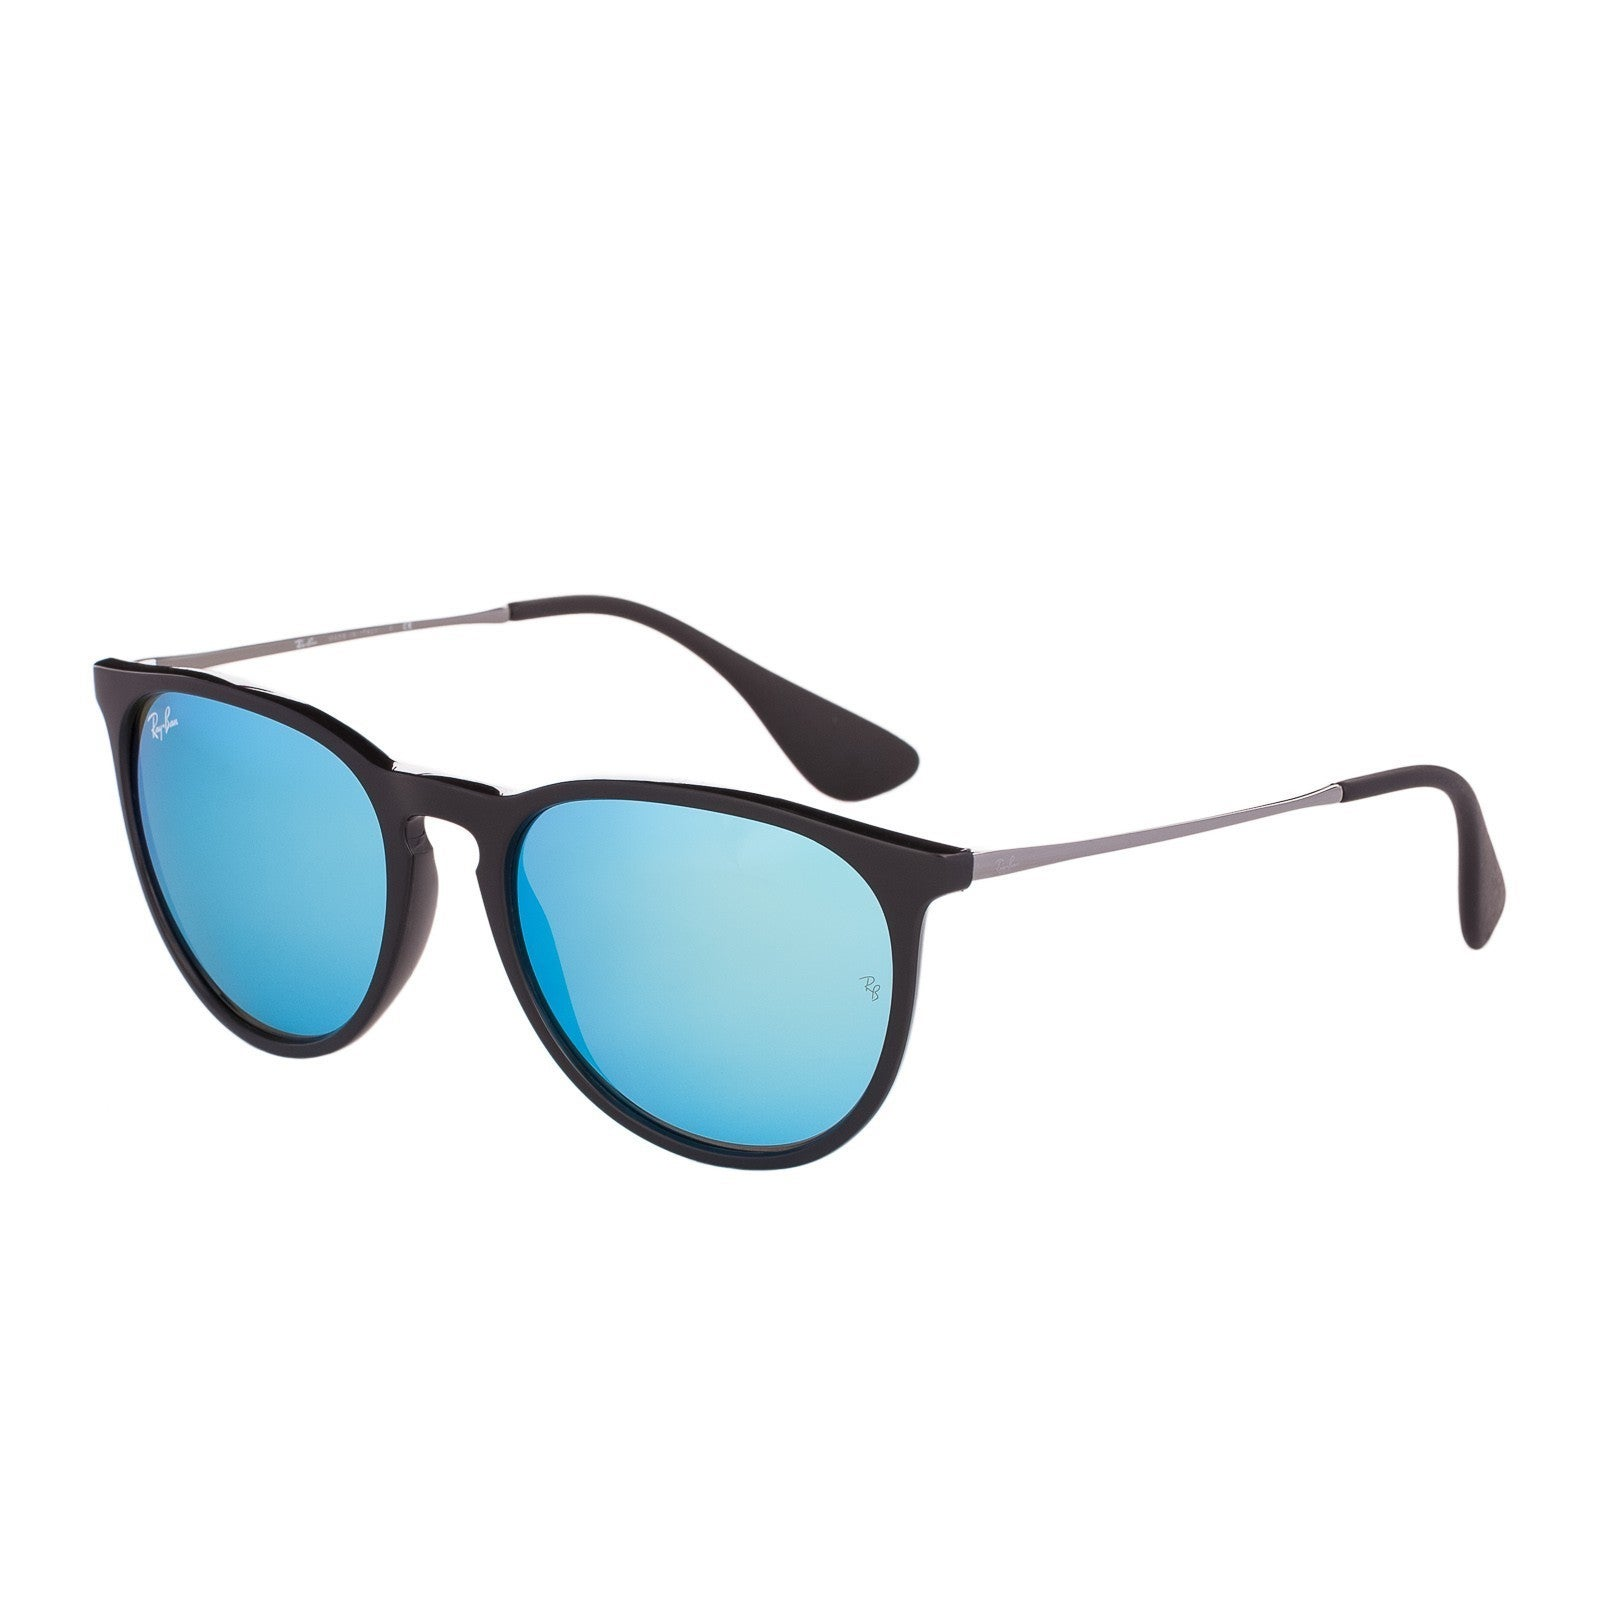 17caa594eb Shop Ray-Ban Erika Color Mix Blur RB4171 601 5554 Womens Black Gunmetal  Frame Blue Mirror Lens Sunglasses - Free Shipping Today - Overstock -  10482139